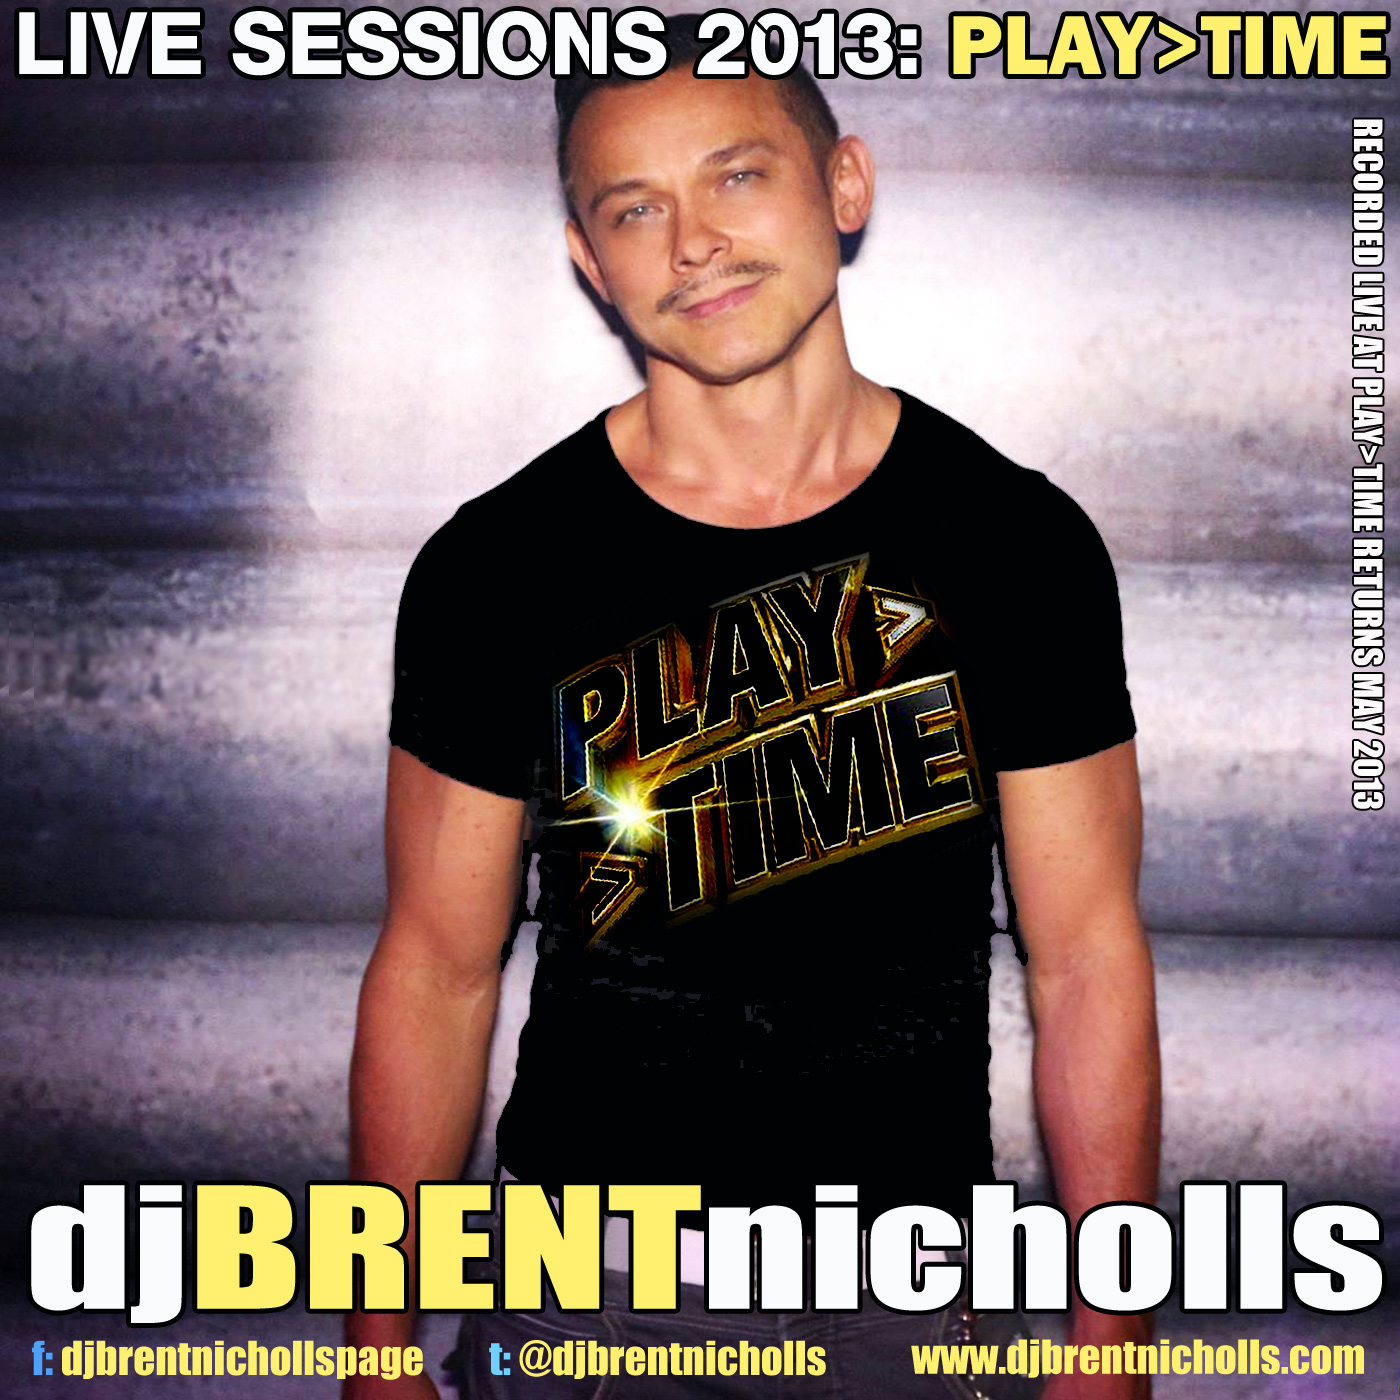 LIVE SESSIONS 2013: PLAYTIME RETURNS